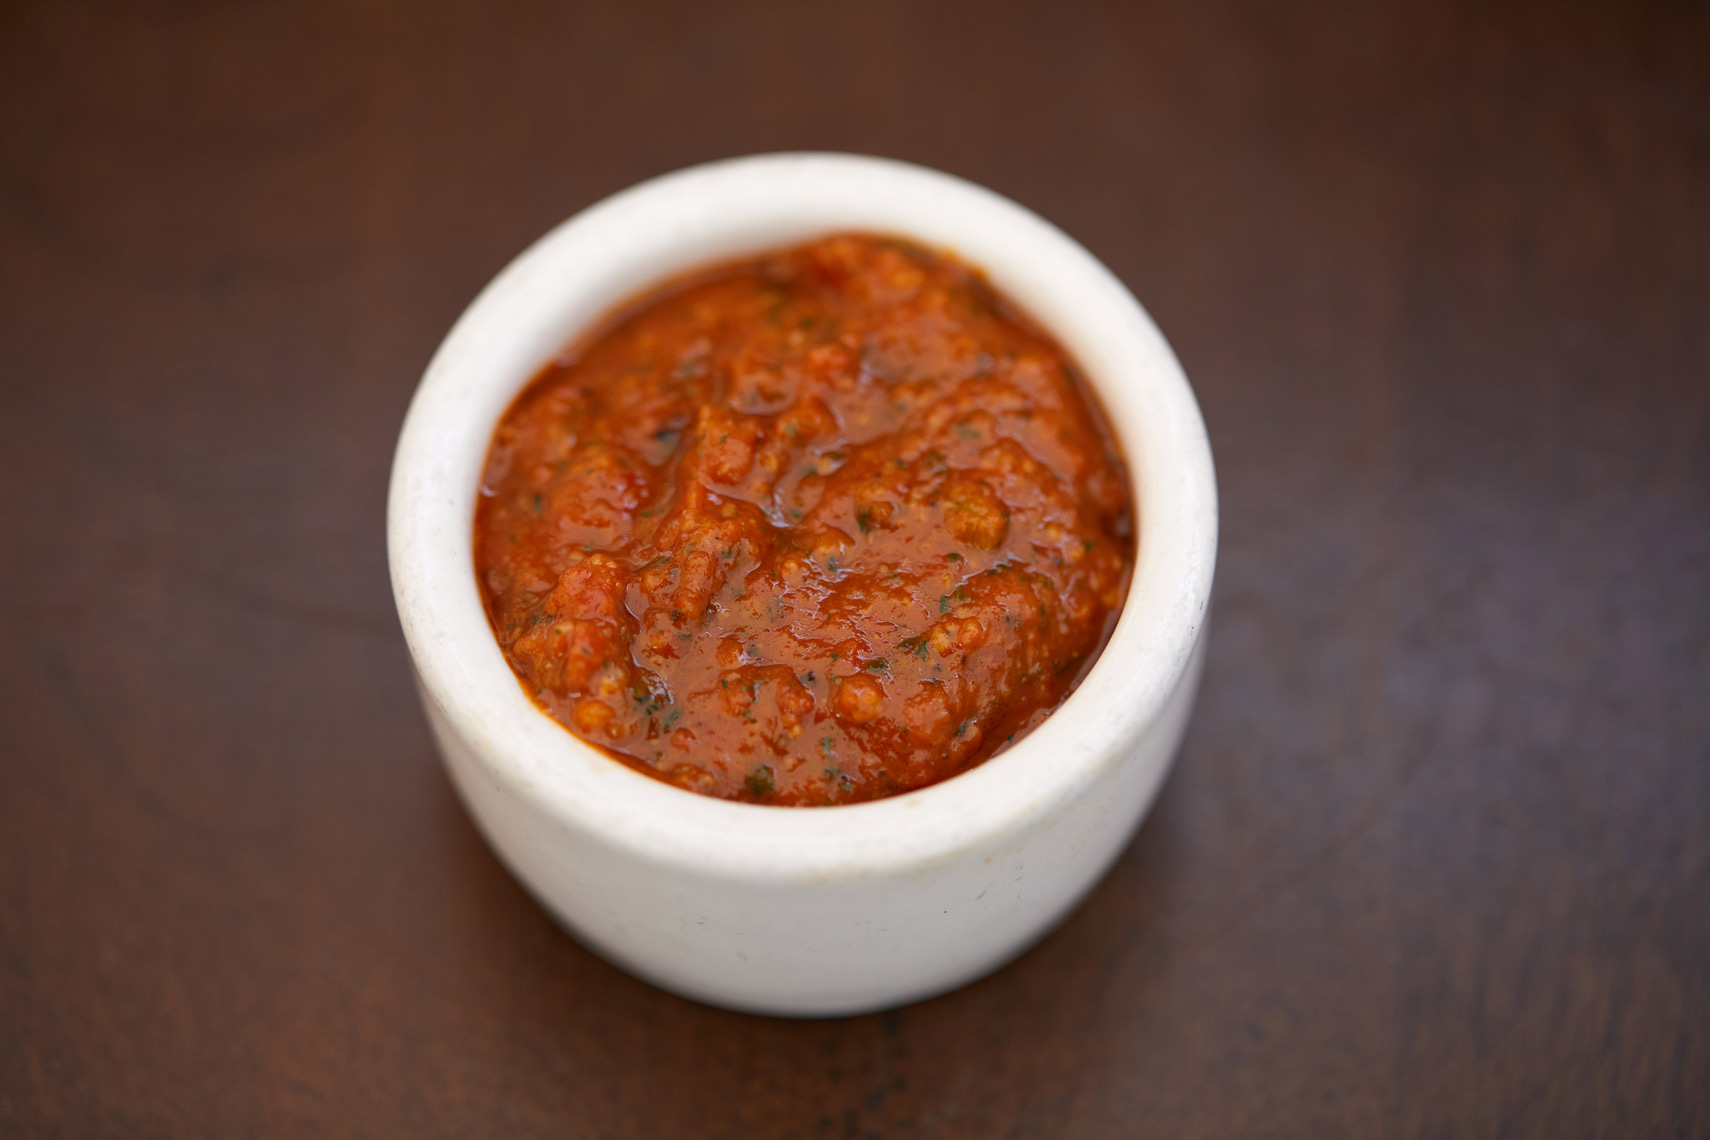 Sun Dried Tomato Dipping Sauce in a Ramekin